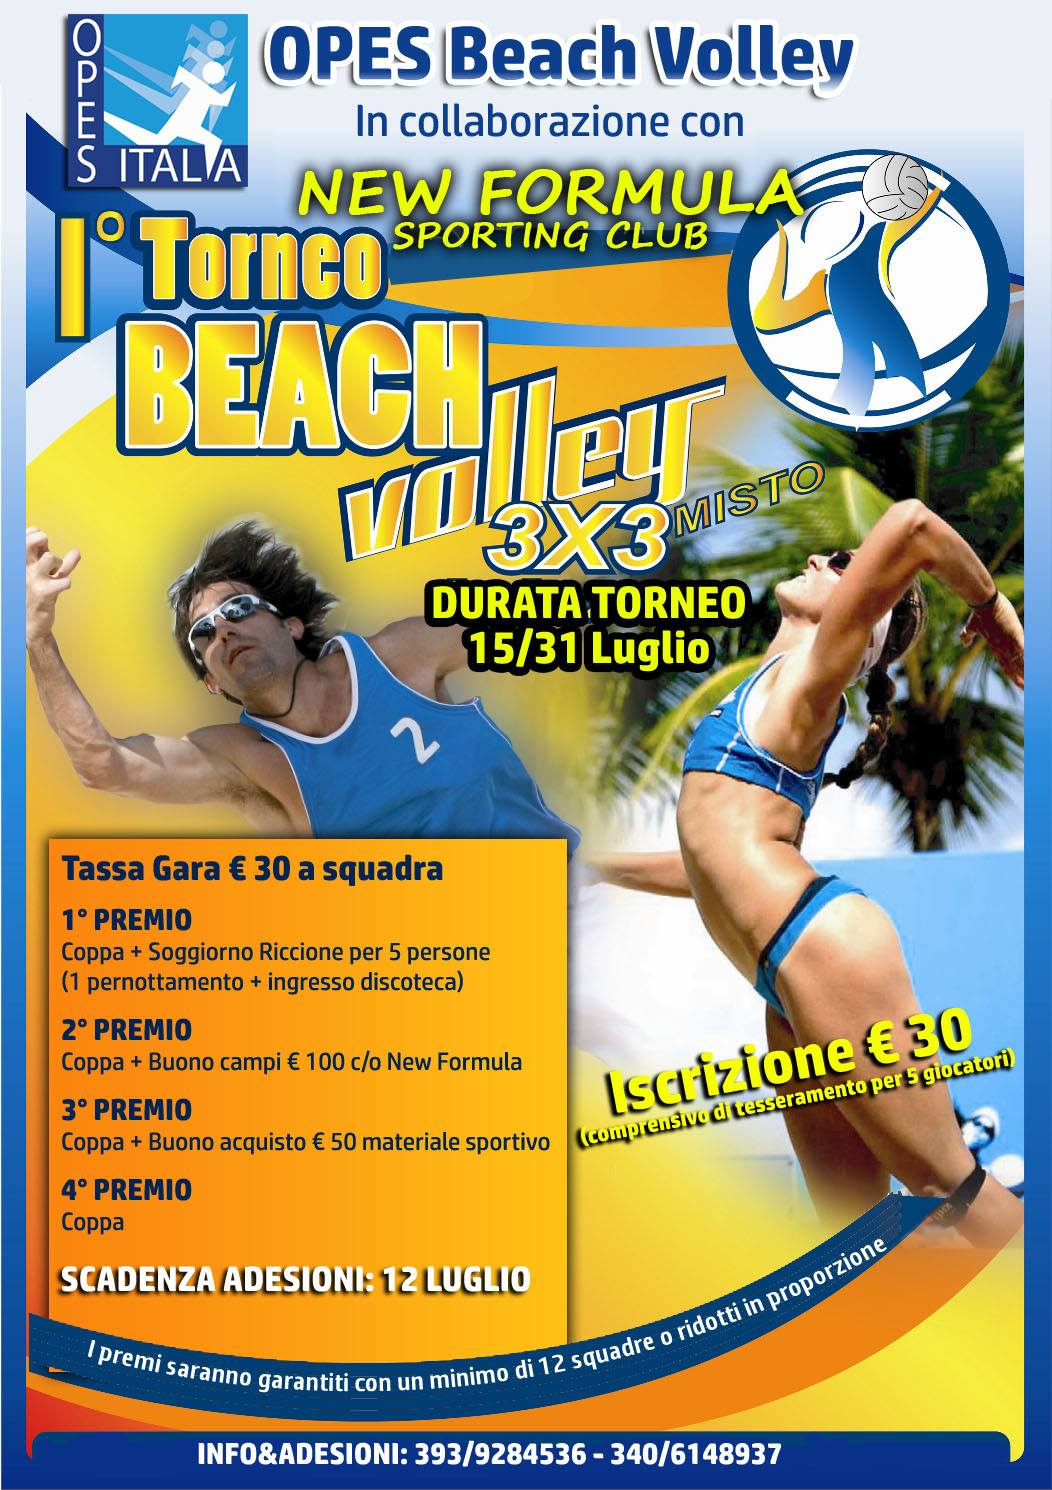 opes beach volley